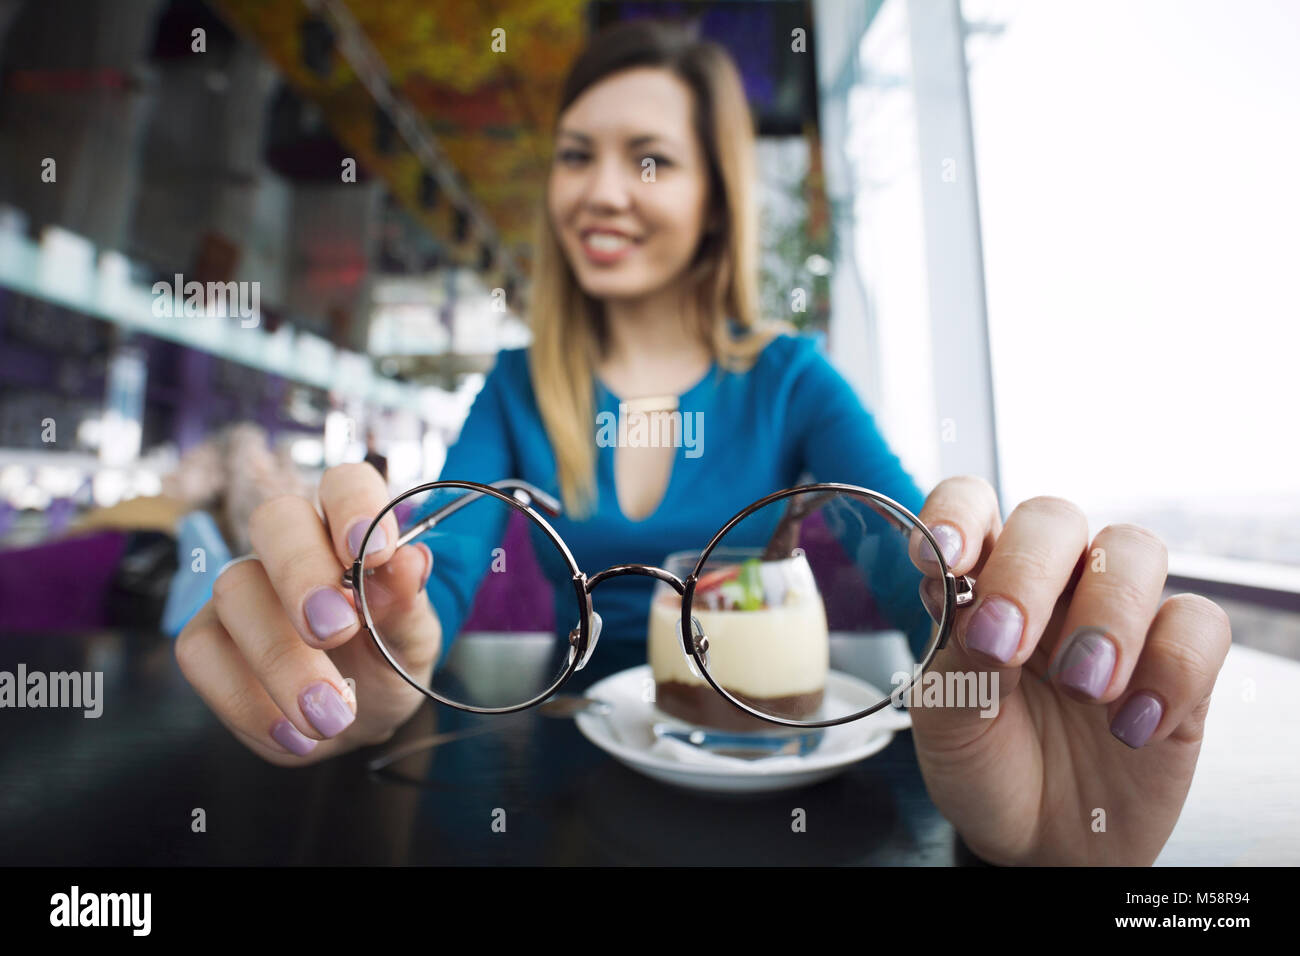 Pretty young girl holding glasses in hands sitting in cafe, ophthalmology - Stock Image